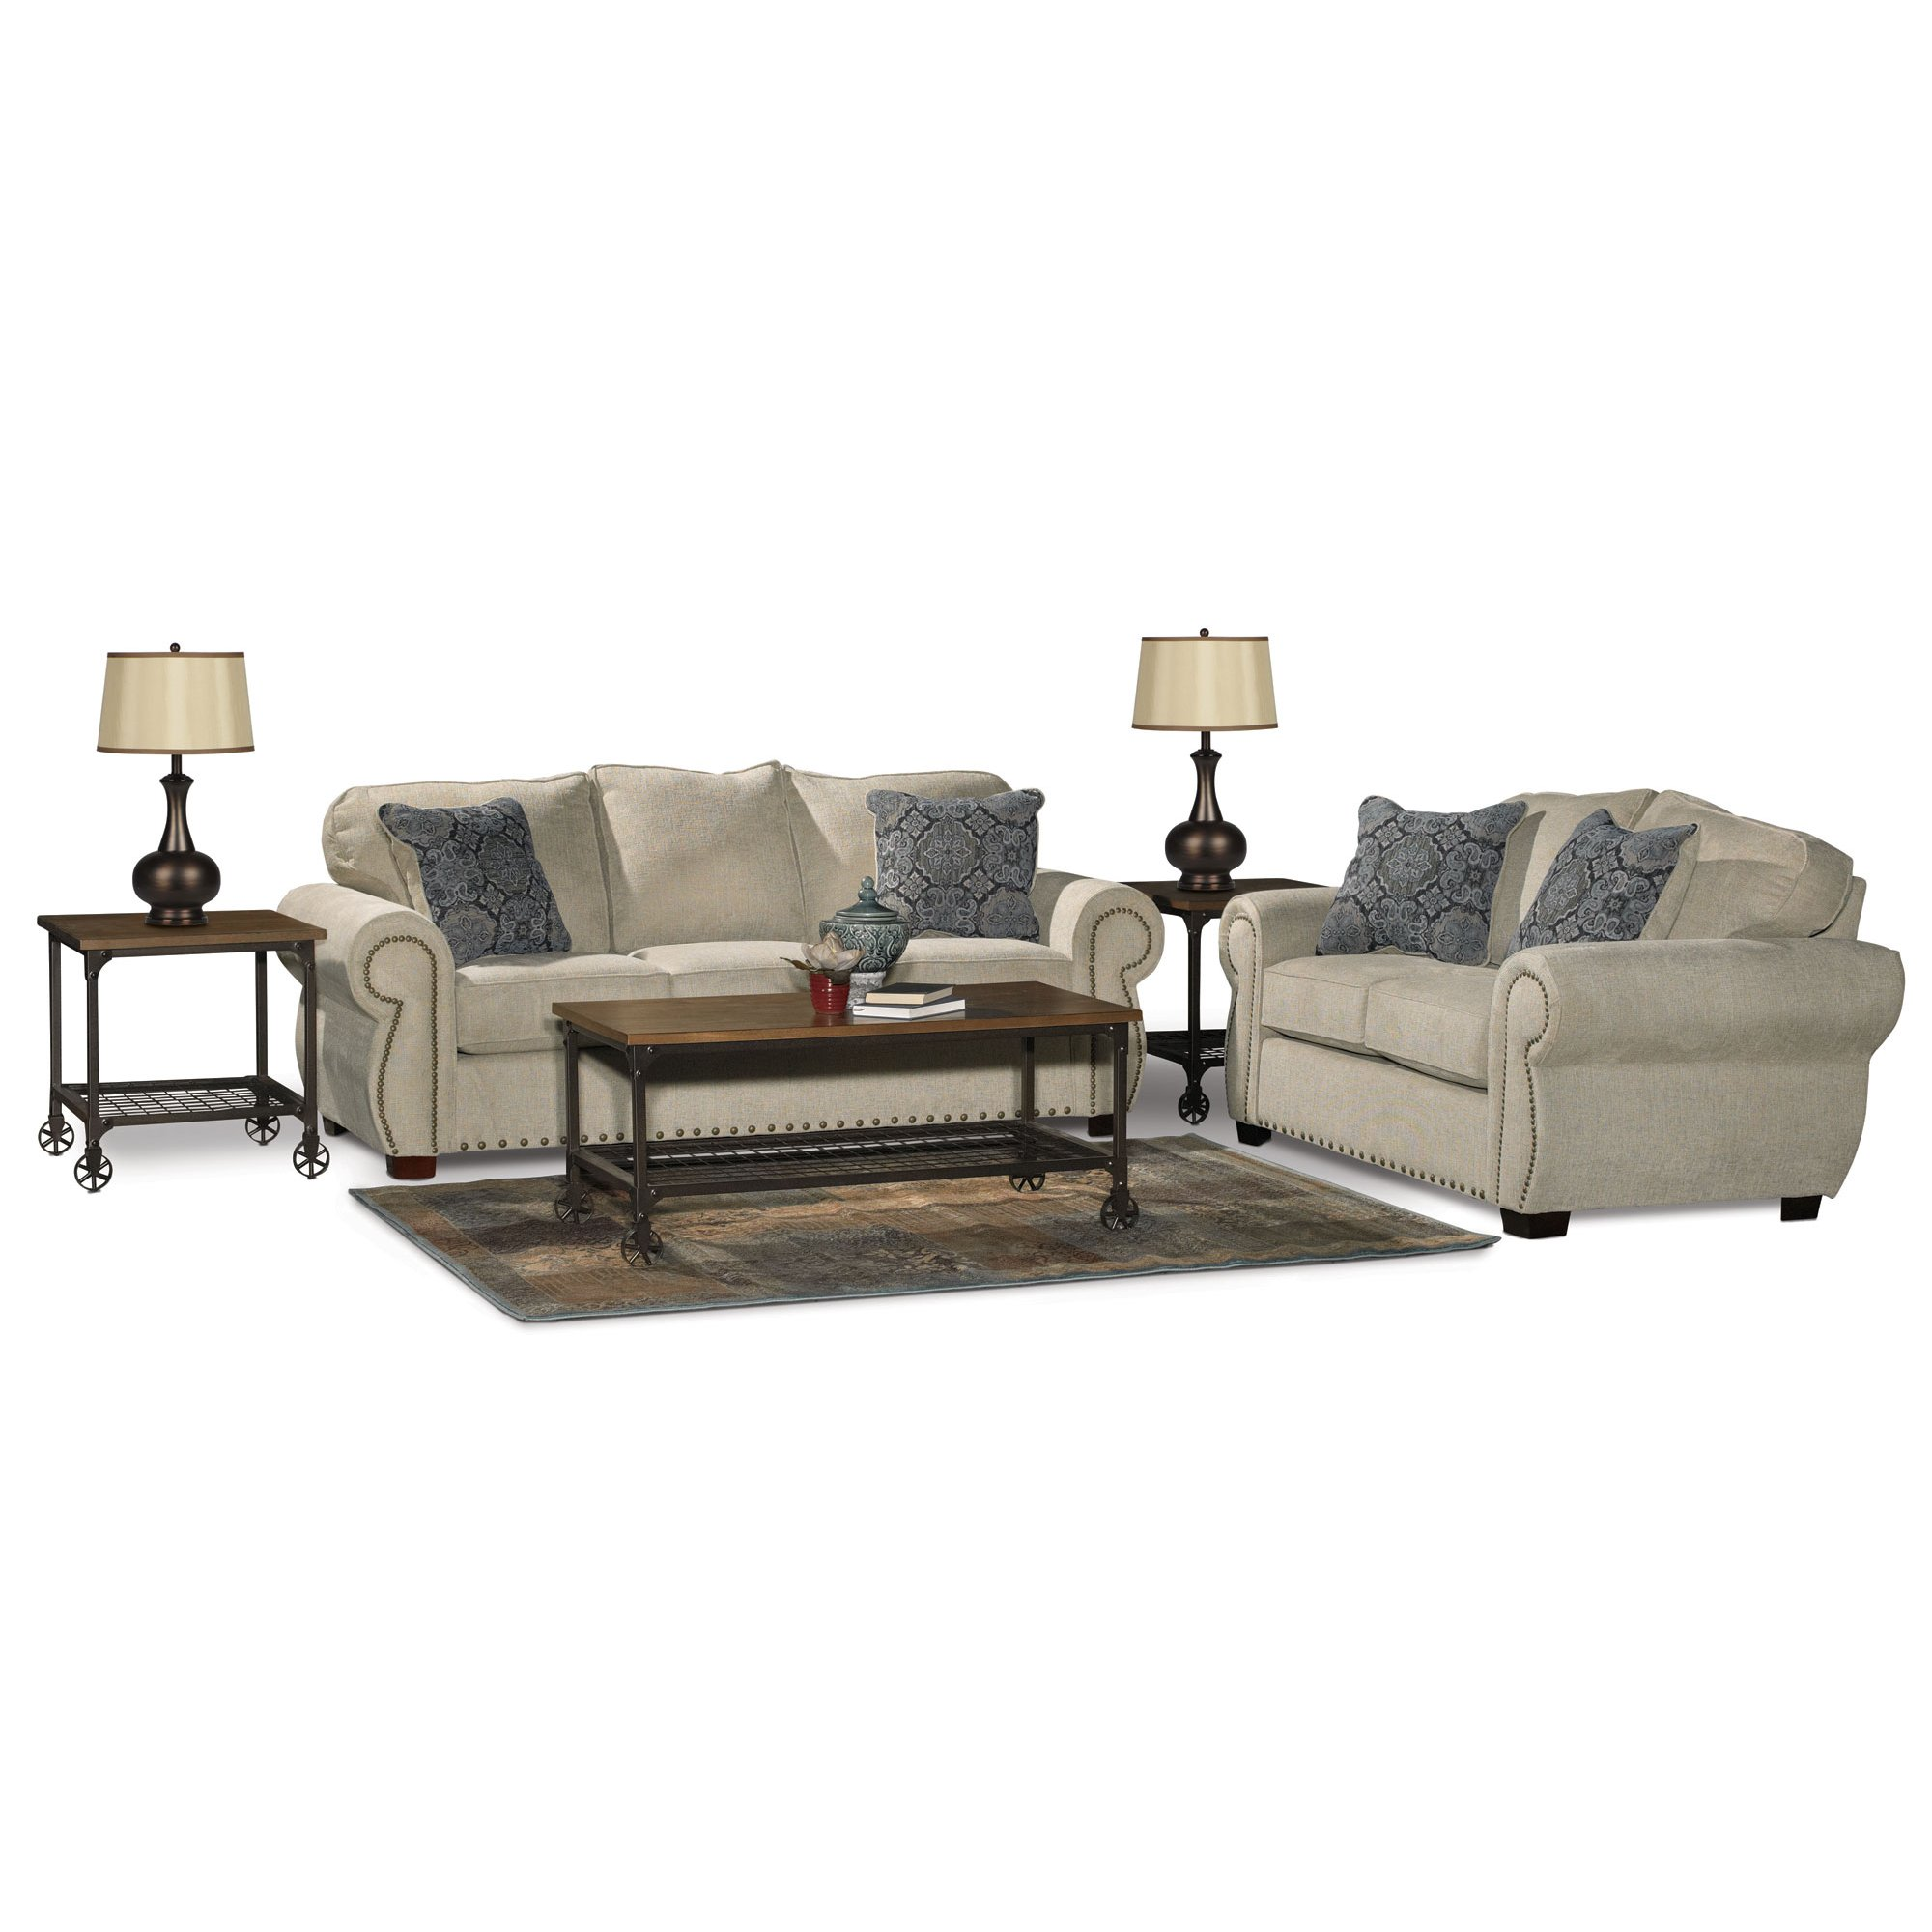 Traditional Canvas Tan Sofa Bed 7 Piece Living Room Set - Southport ...